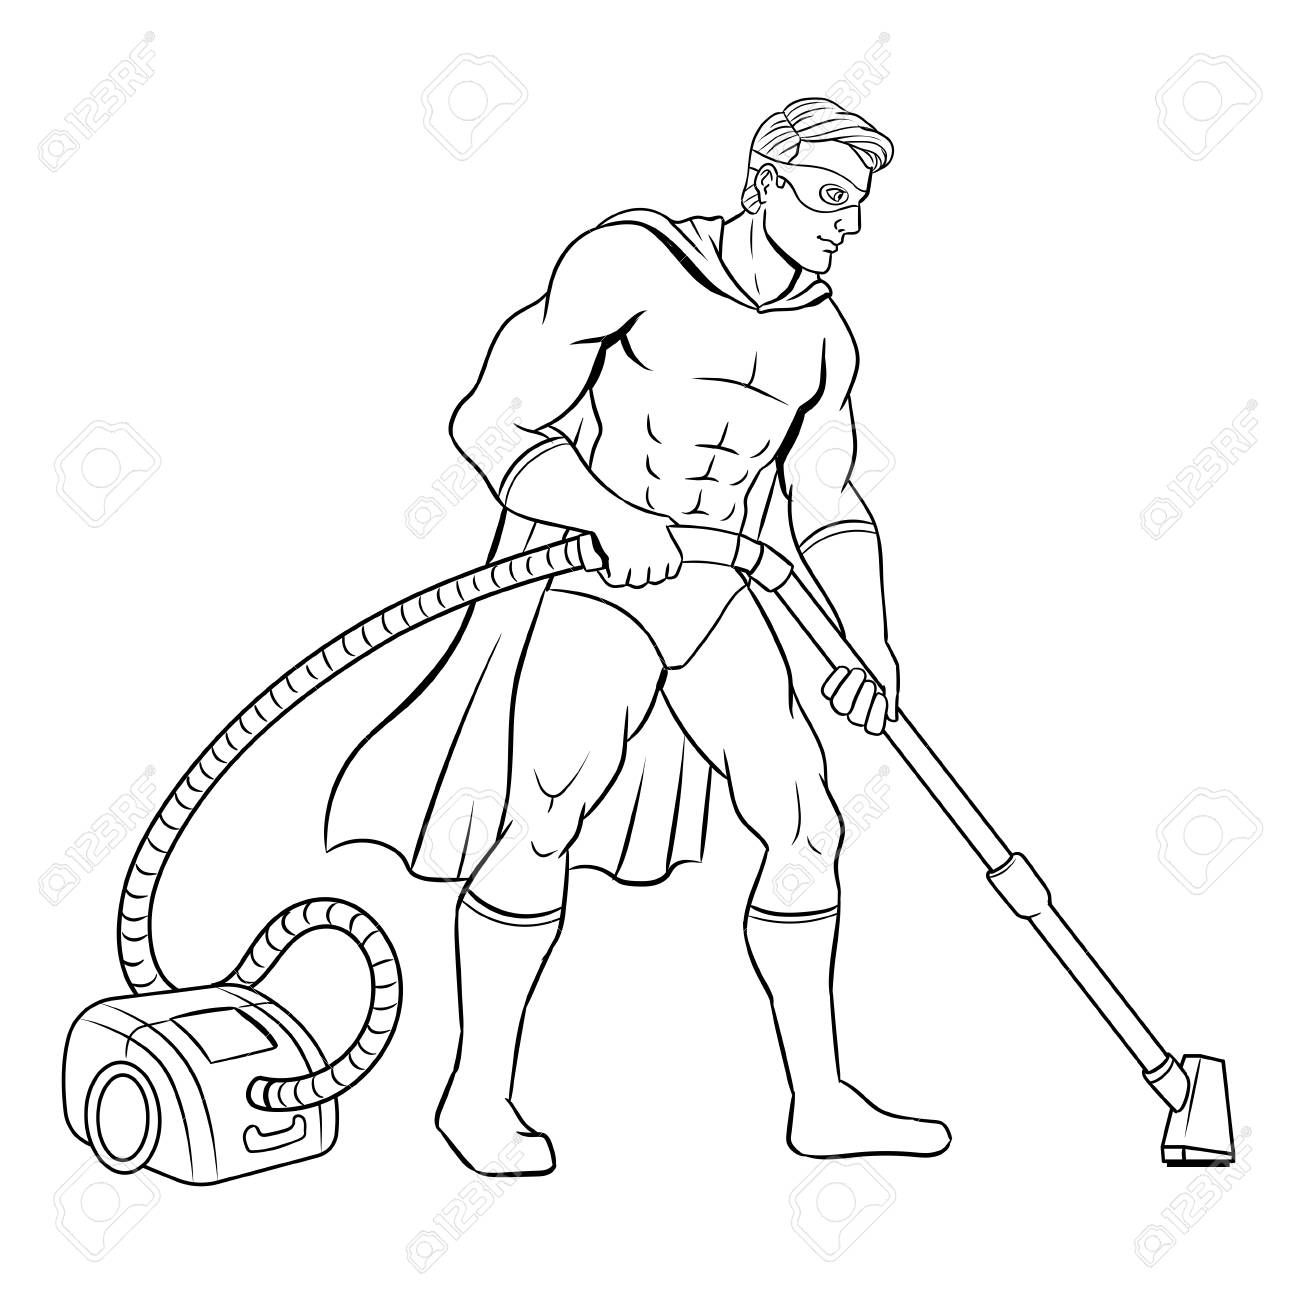 Superhero With Vacuum Cleaner Coloring Book Vector Illustration